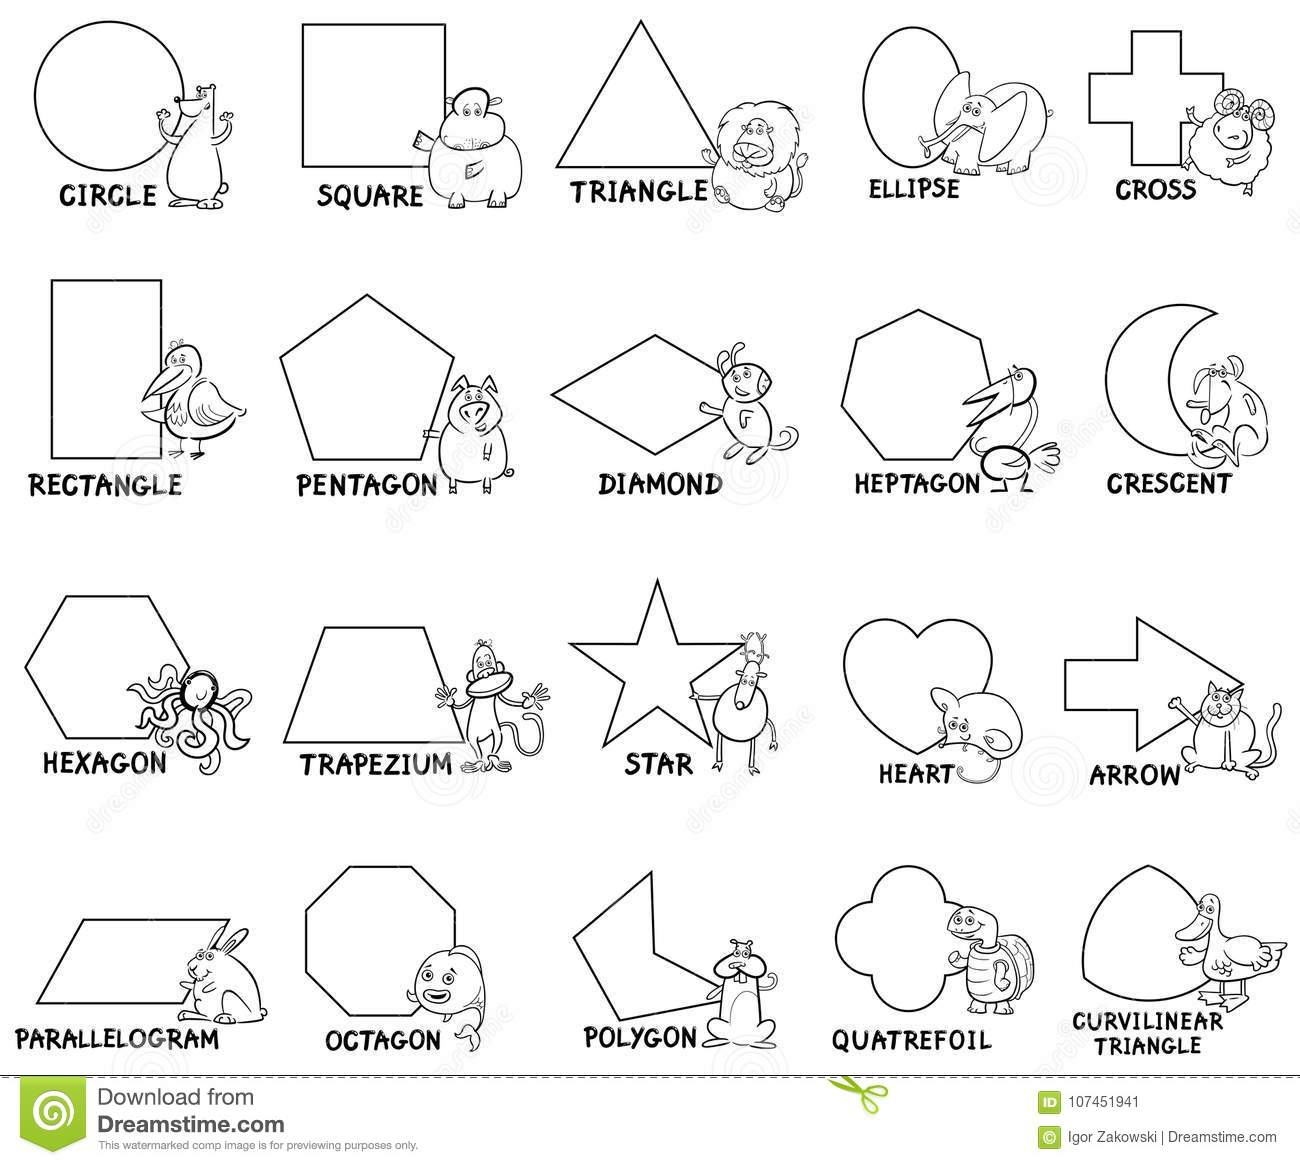 Curvilinear Triangle Worksheets Preschool Curvilinear Best Free Printable Worksheets